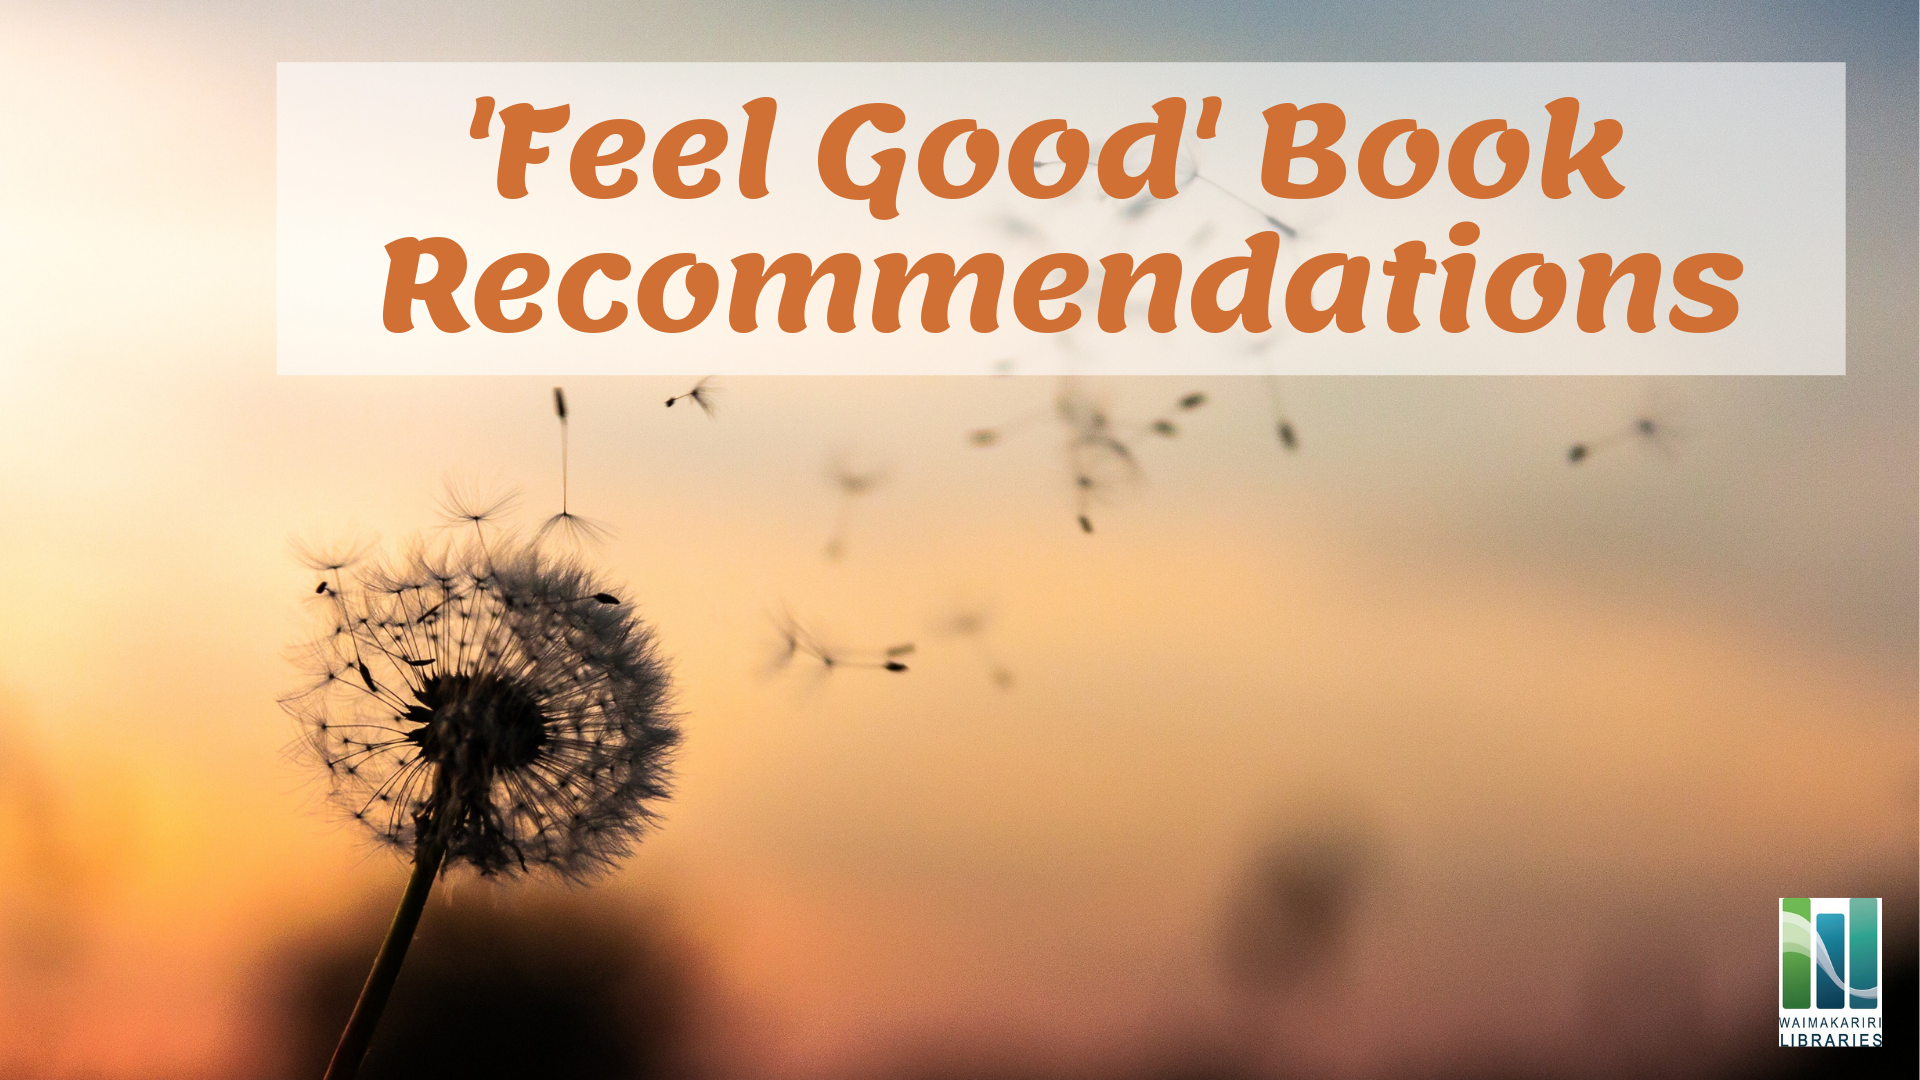 Feel Good Book Recommendations